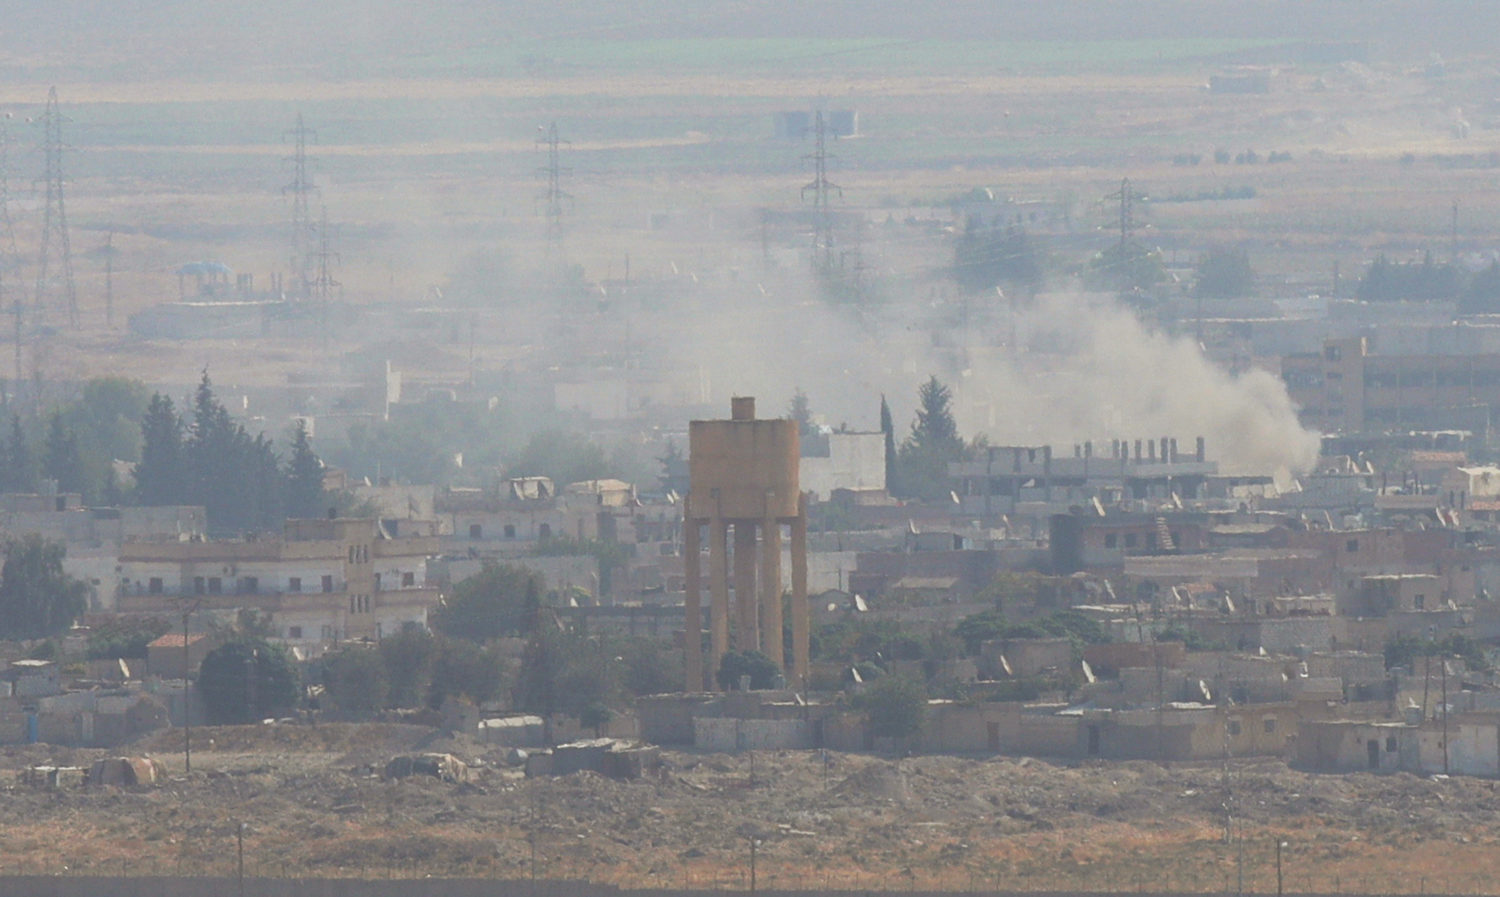 Smoke rises over the Syrian town of Ras al-Ain as seen from the Turkish border town of Ceylanpinar, Sanliurfa province, Turkey, October 18, 2019. REUTERS/Stoyan Nenov